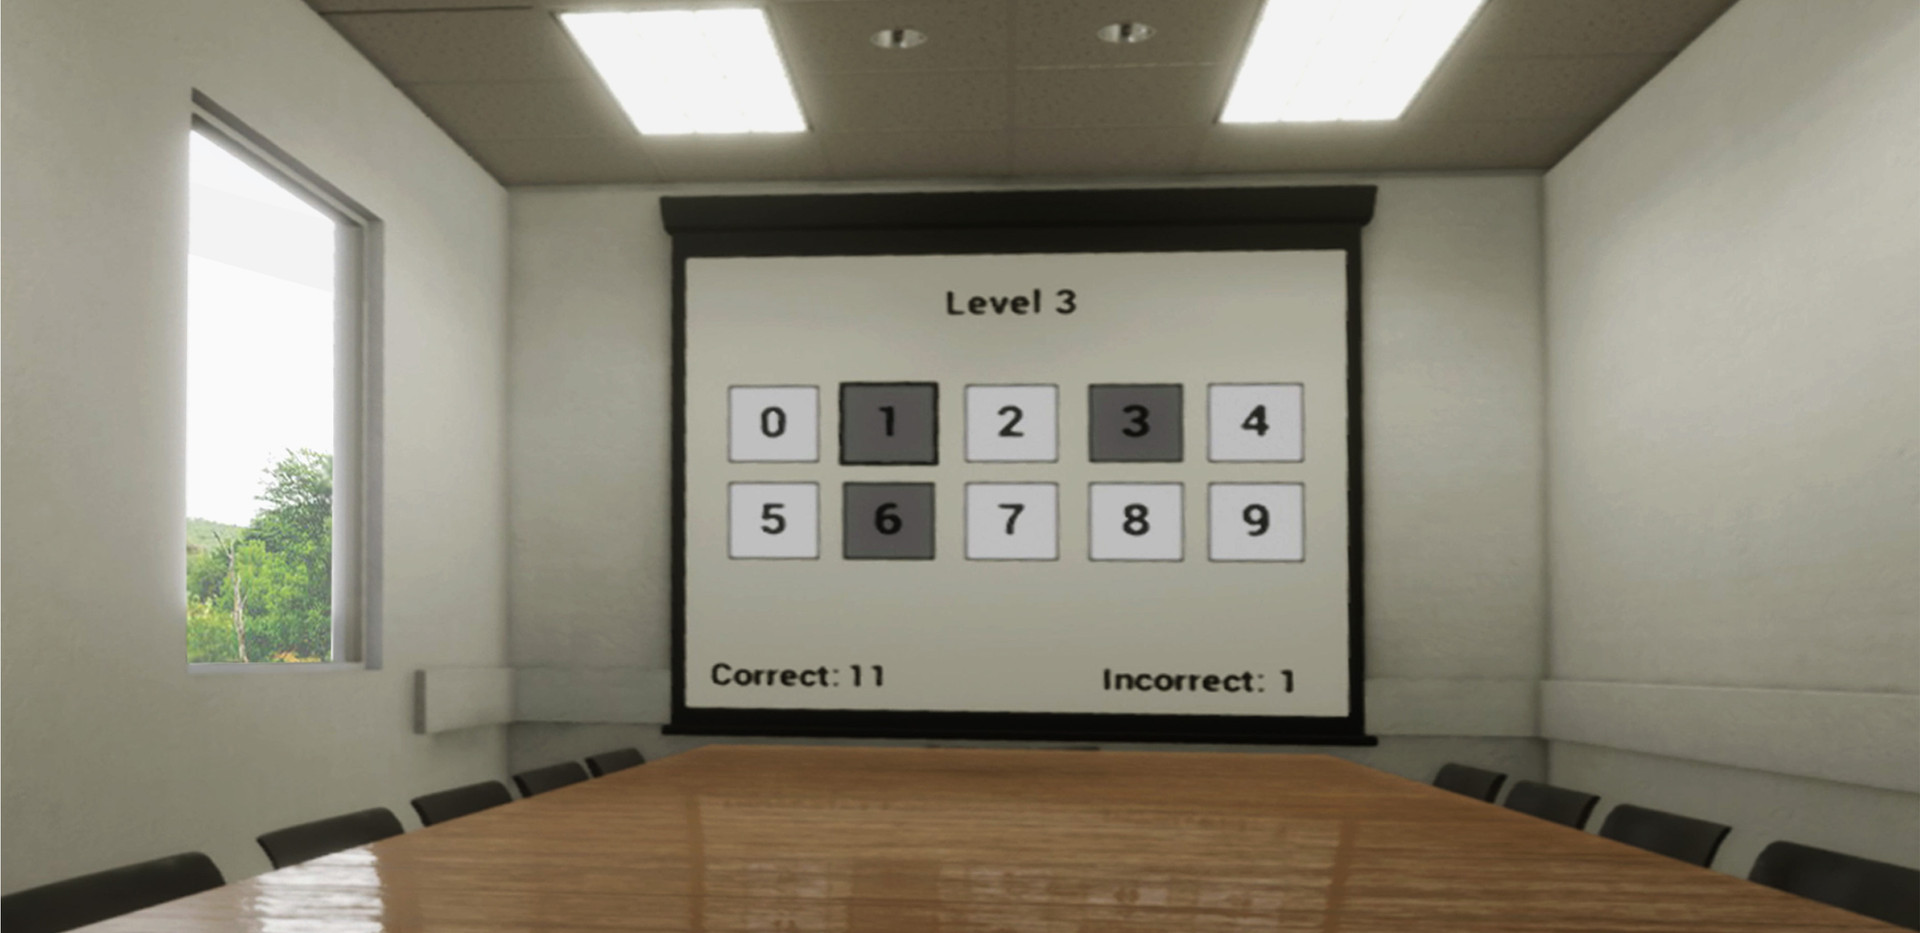 A two-dimensional capture from the actual immersive 3D experience, showing the Digit Span Test in the virtual classroom with a side-window.